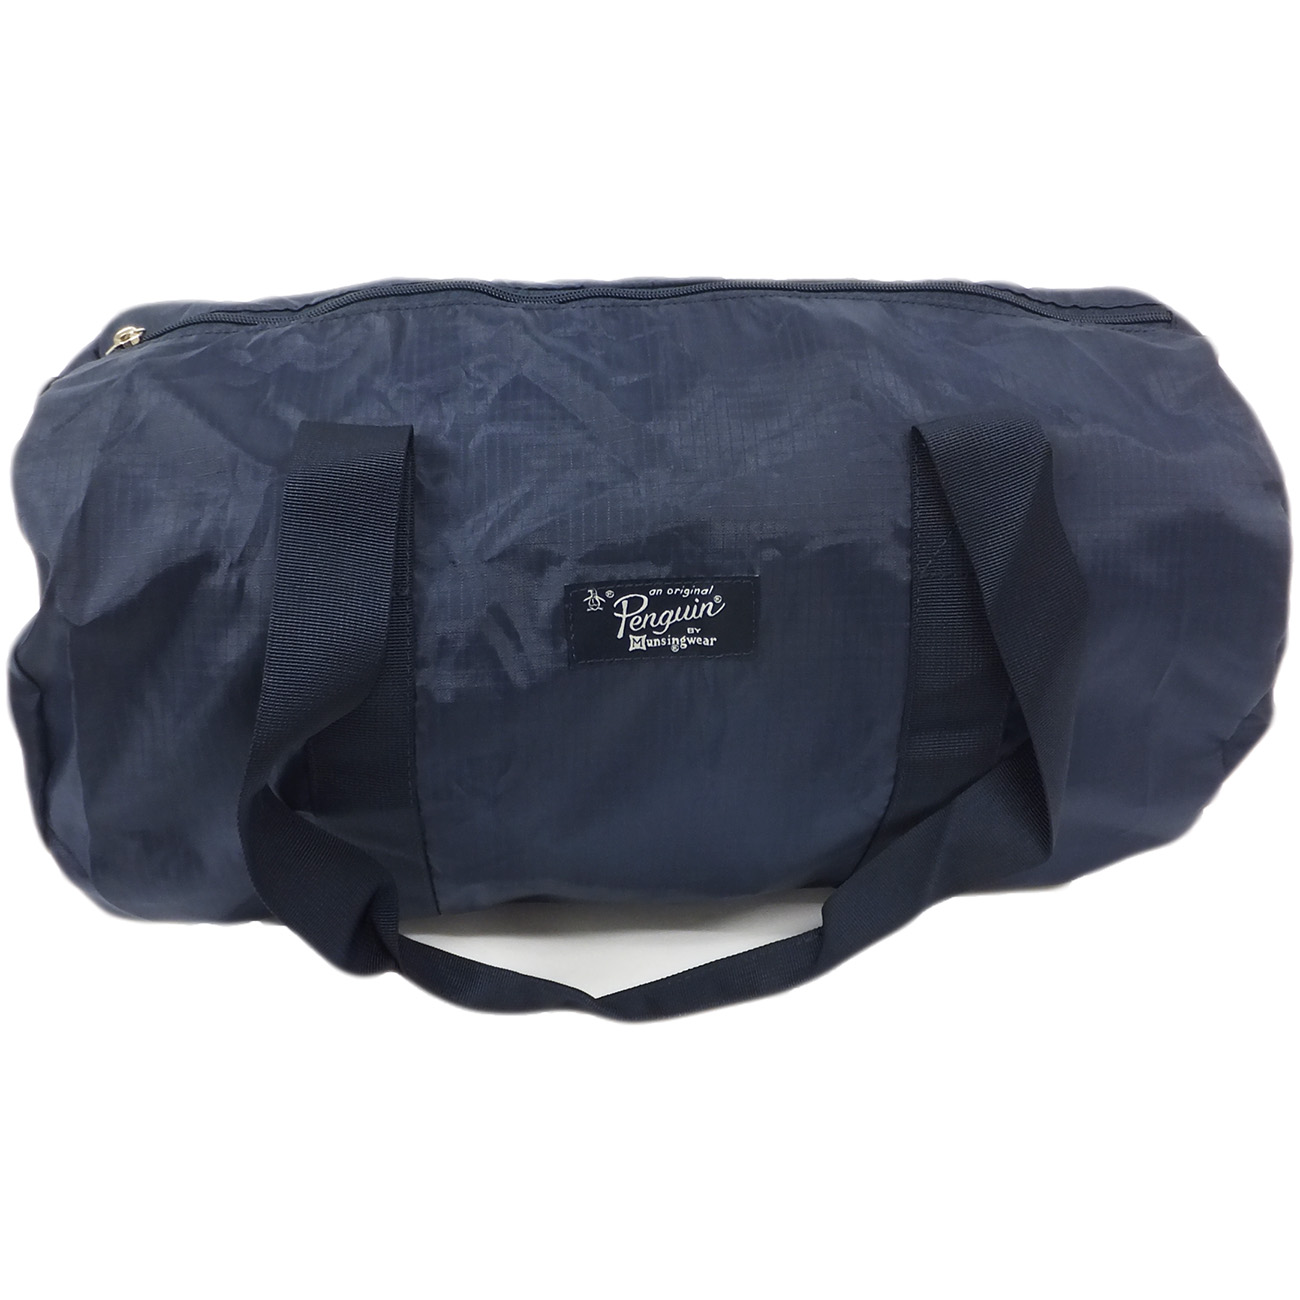 Original Penguin Barrel Bag - Packable Lightweight Travel Bag ...